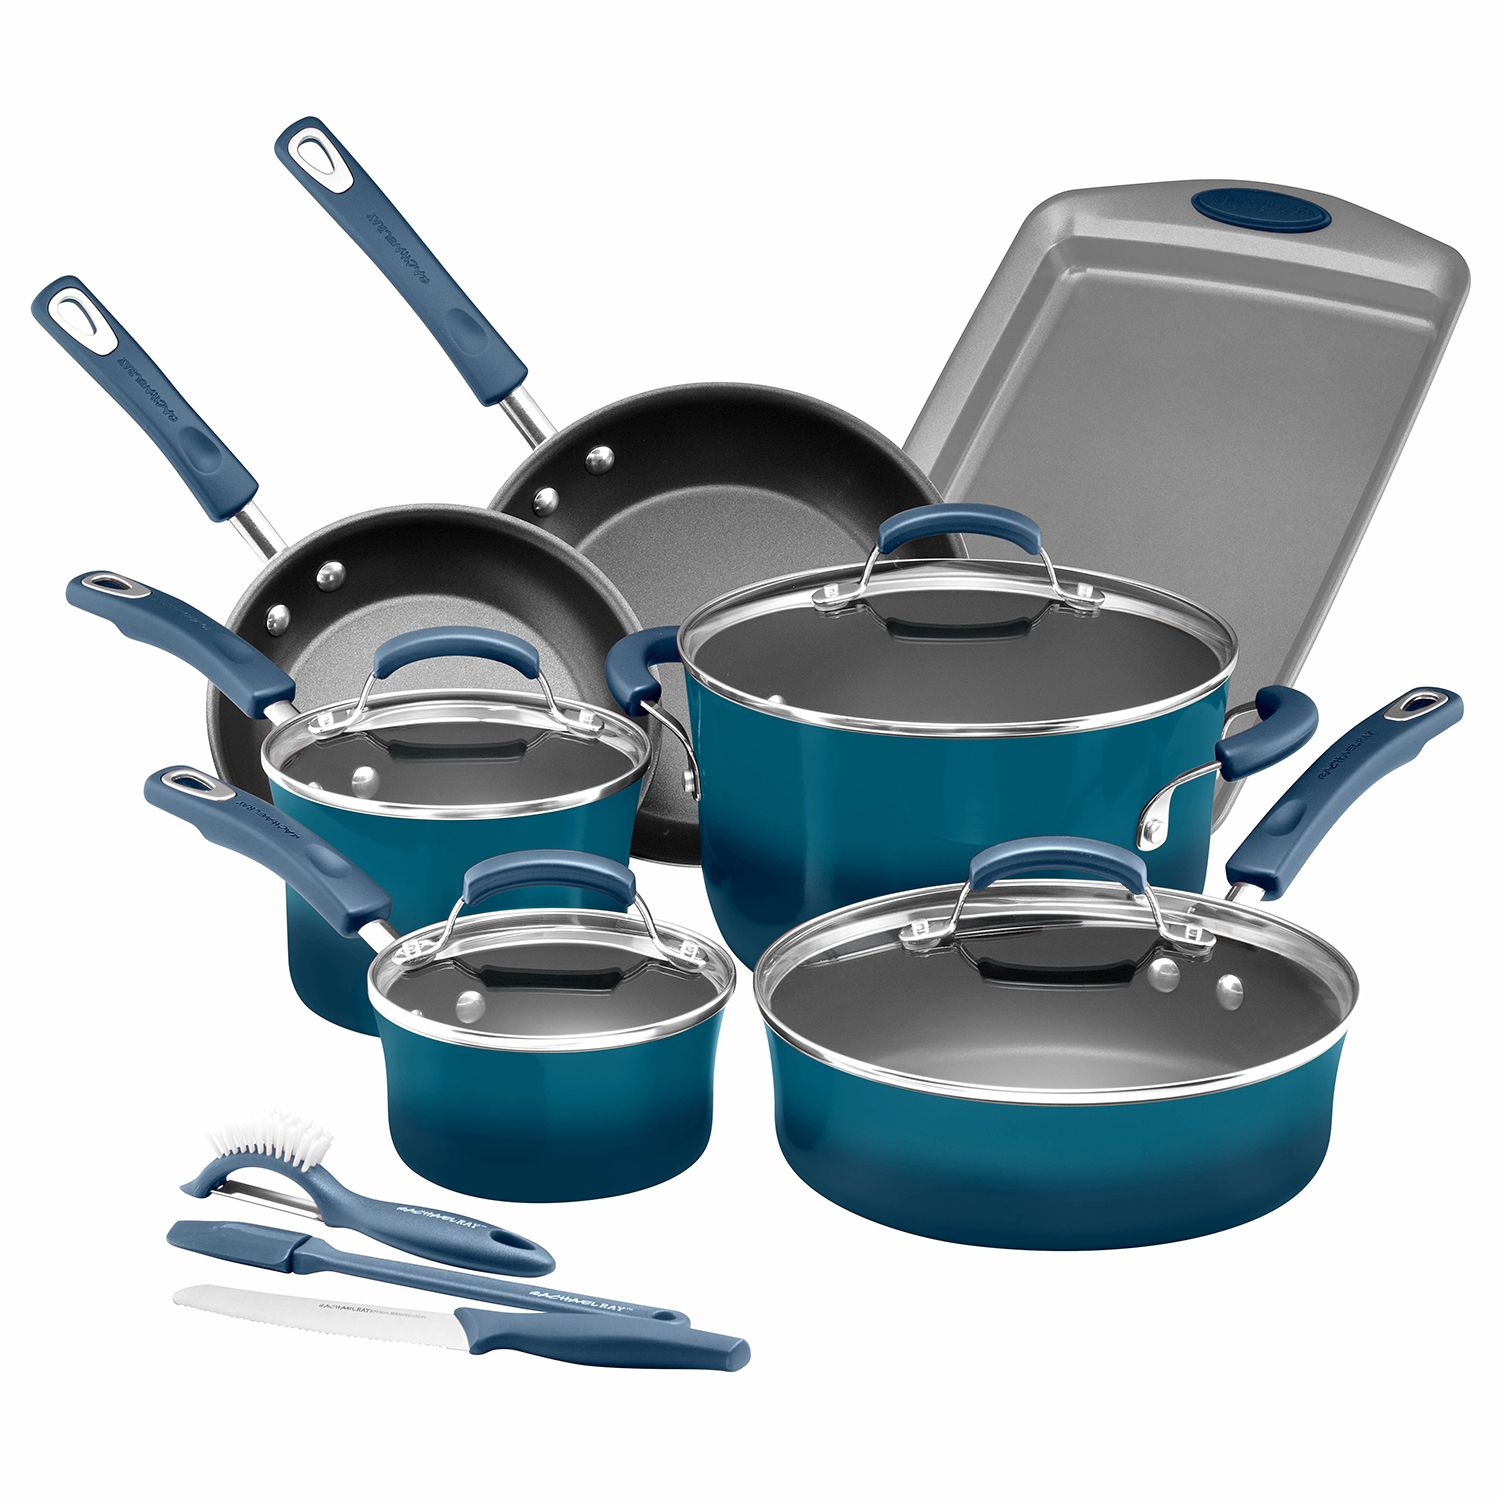 Rachael Ray Brights 14 Pc. Nonstick Cookware Set